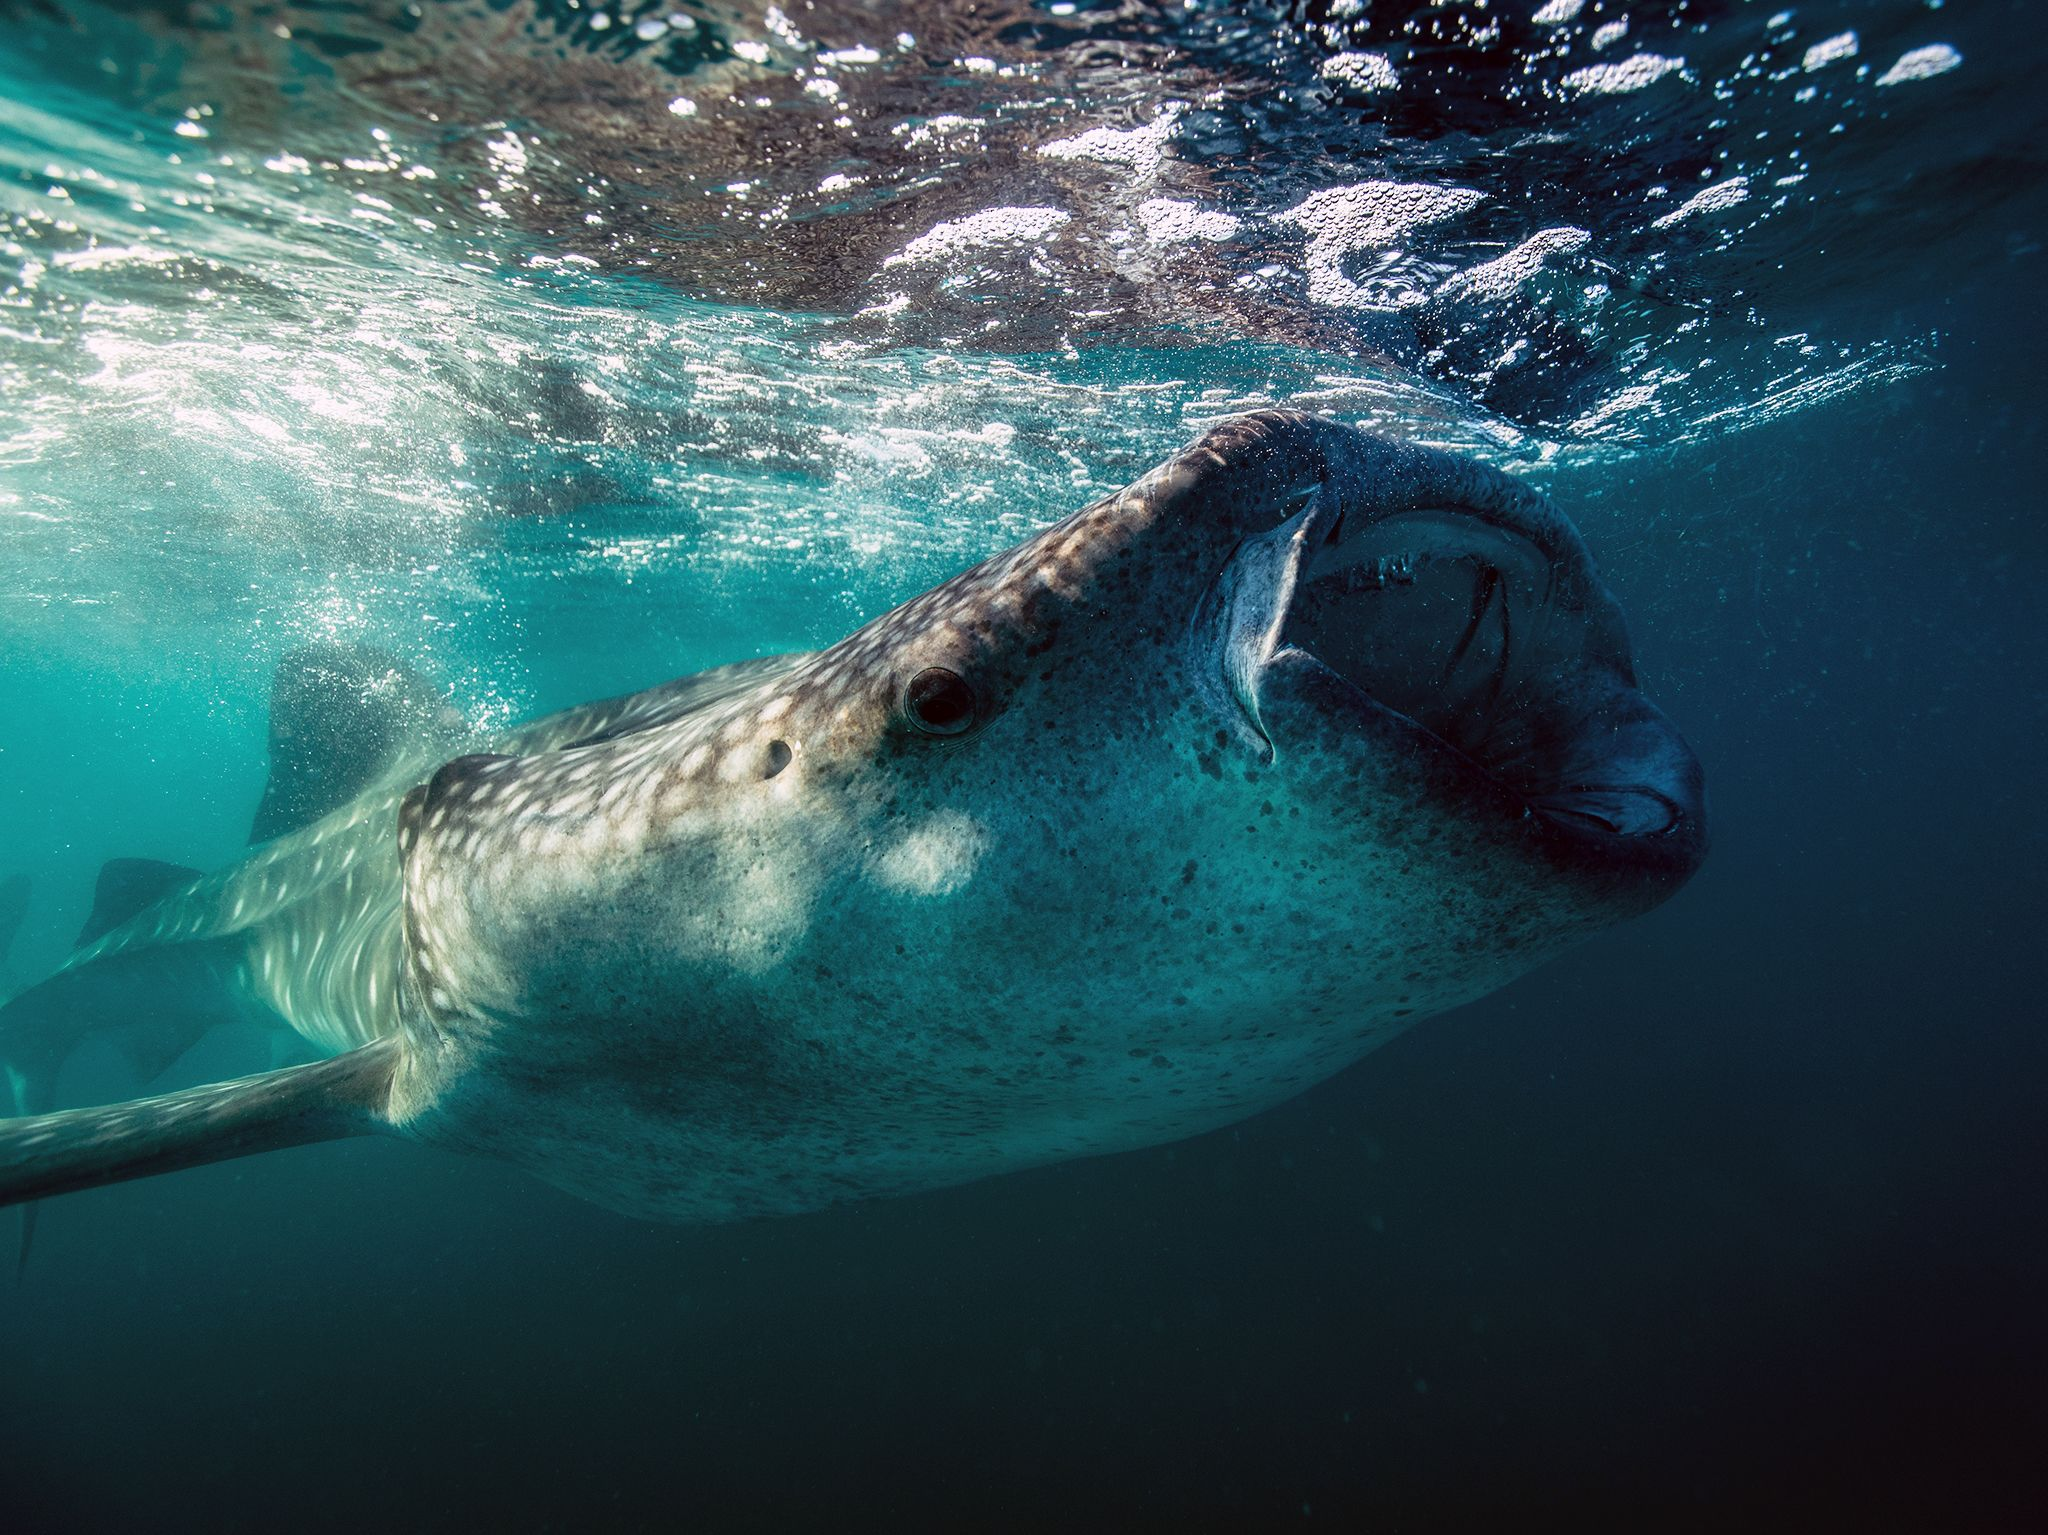 Sea Of Cortez, Mexico:  A juvenile Whale shark gorges on plankton at the surface during a... [Photo of the day - November 2018]